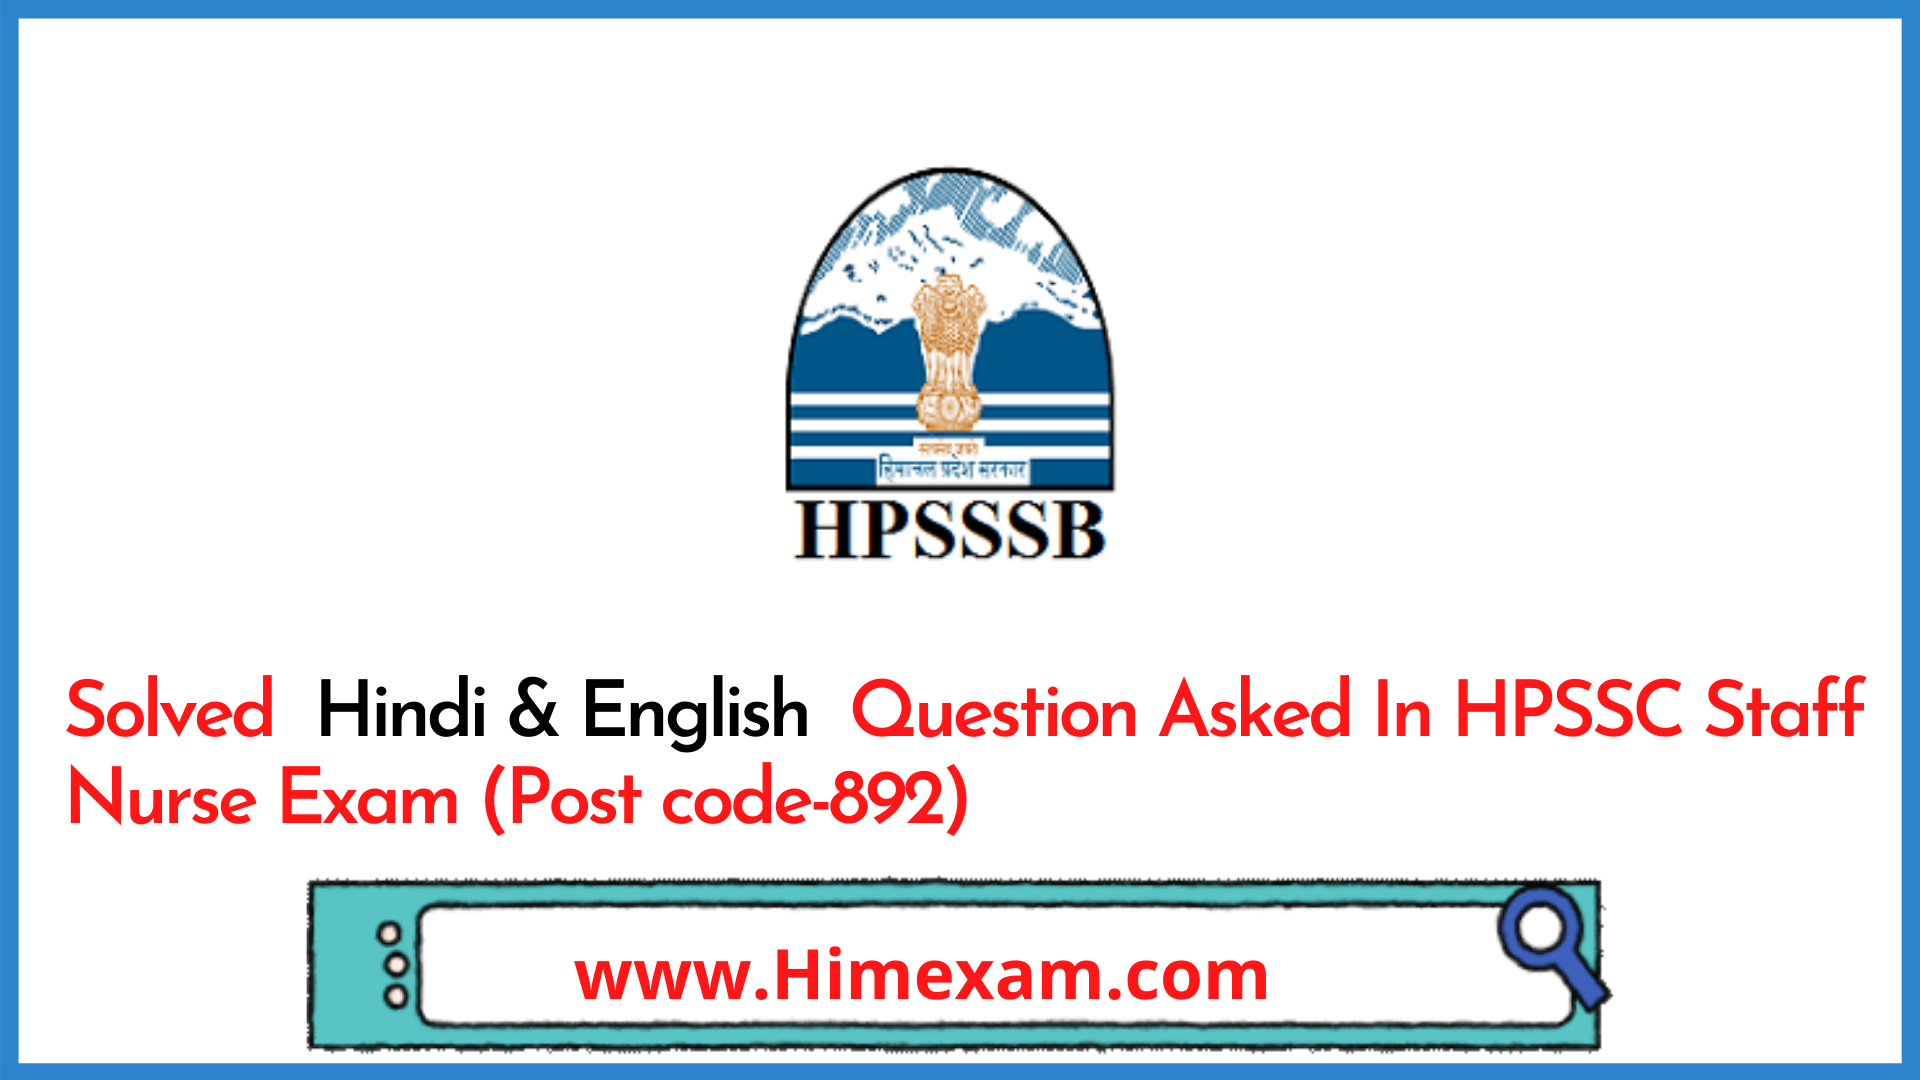 Solved  Hindi & English  Question Asked In HPSSC Staff Nurse Exam (Post code-892)